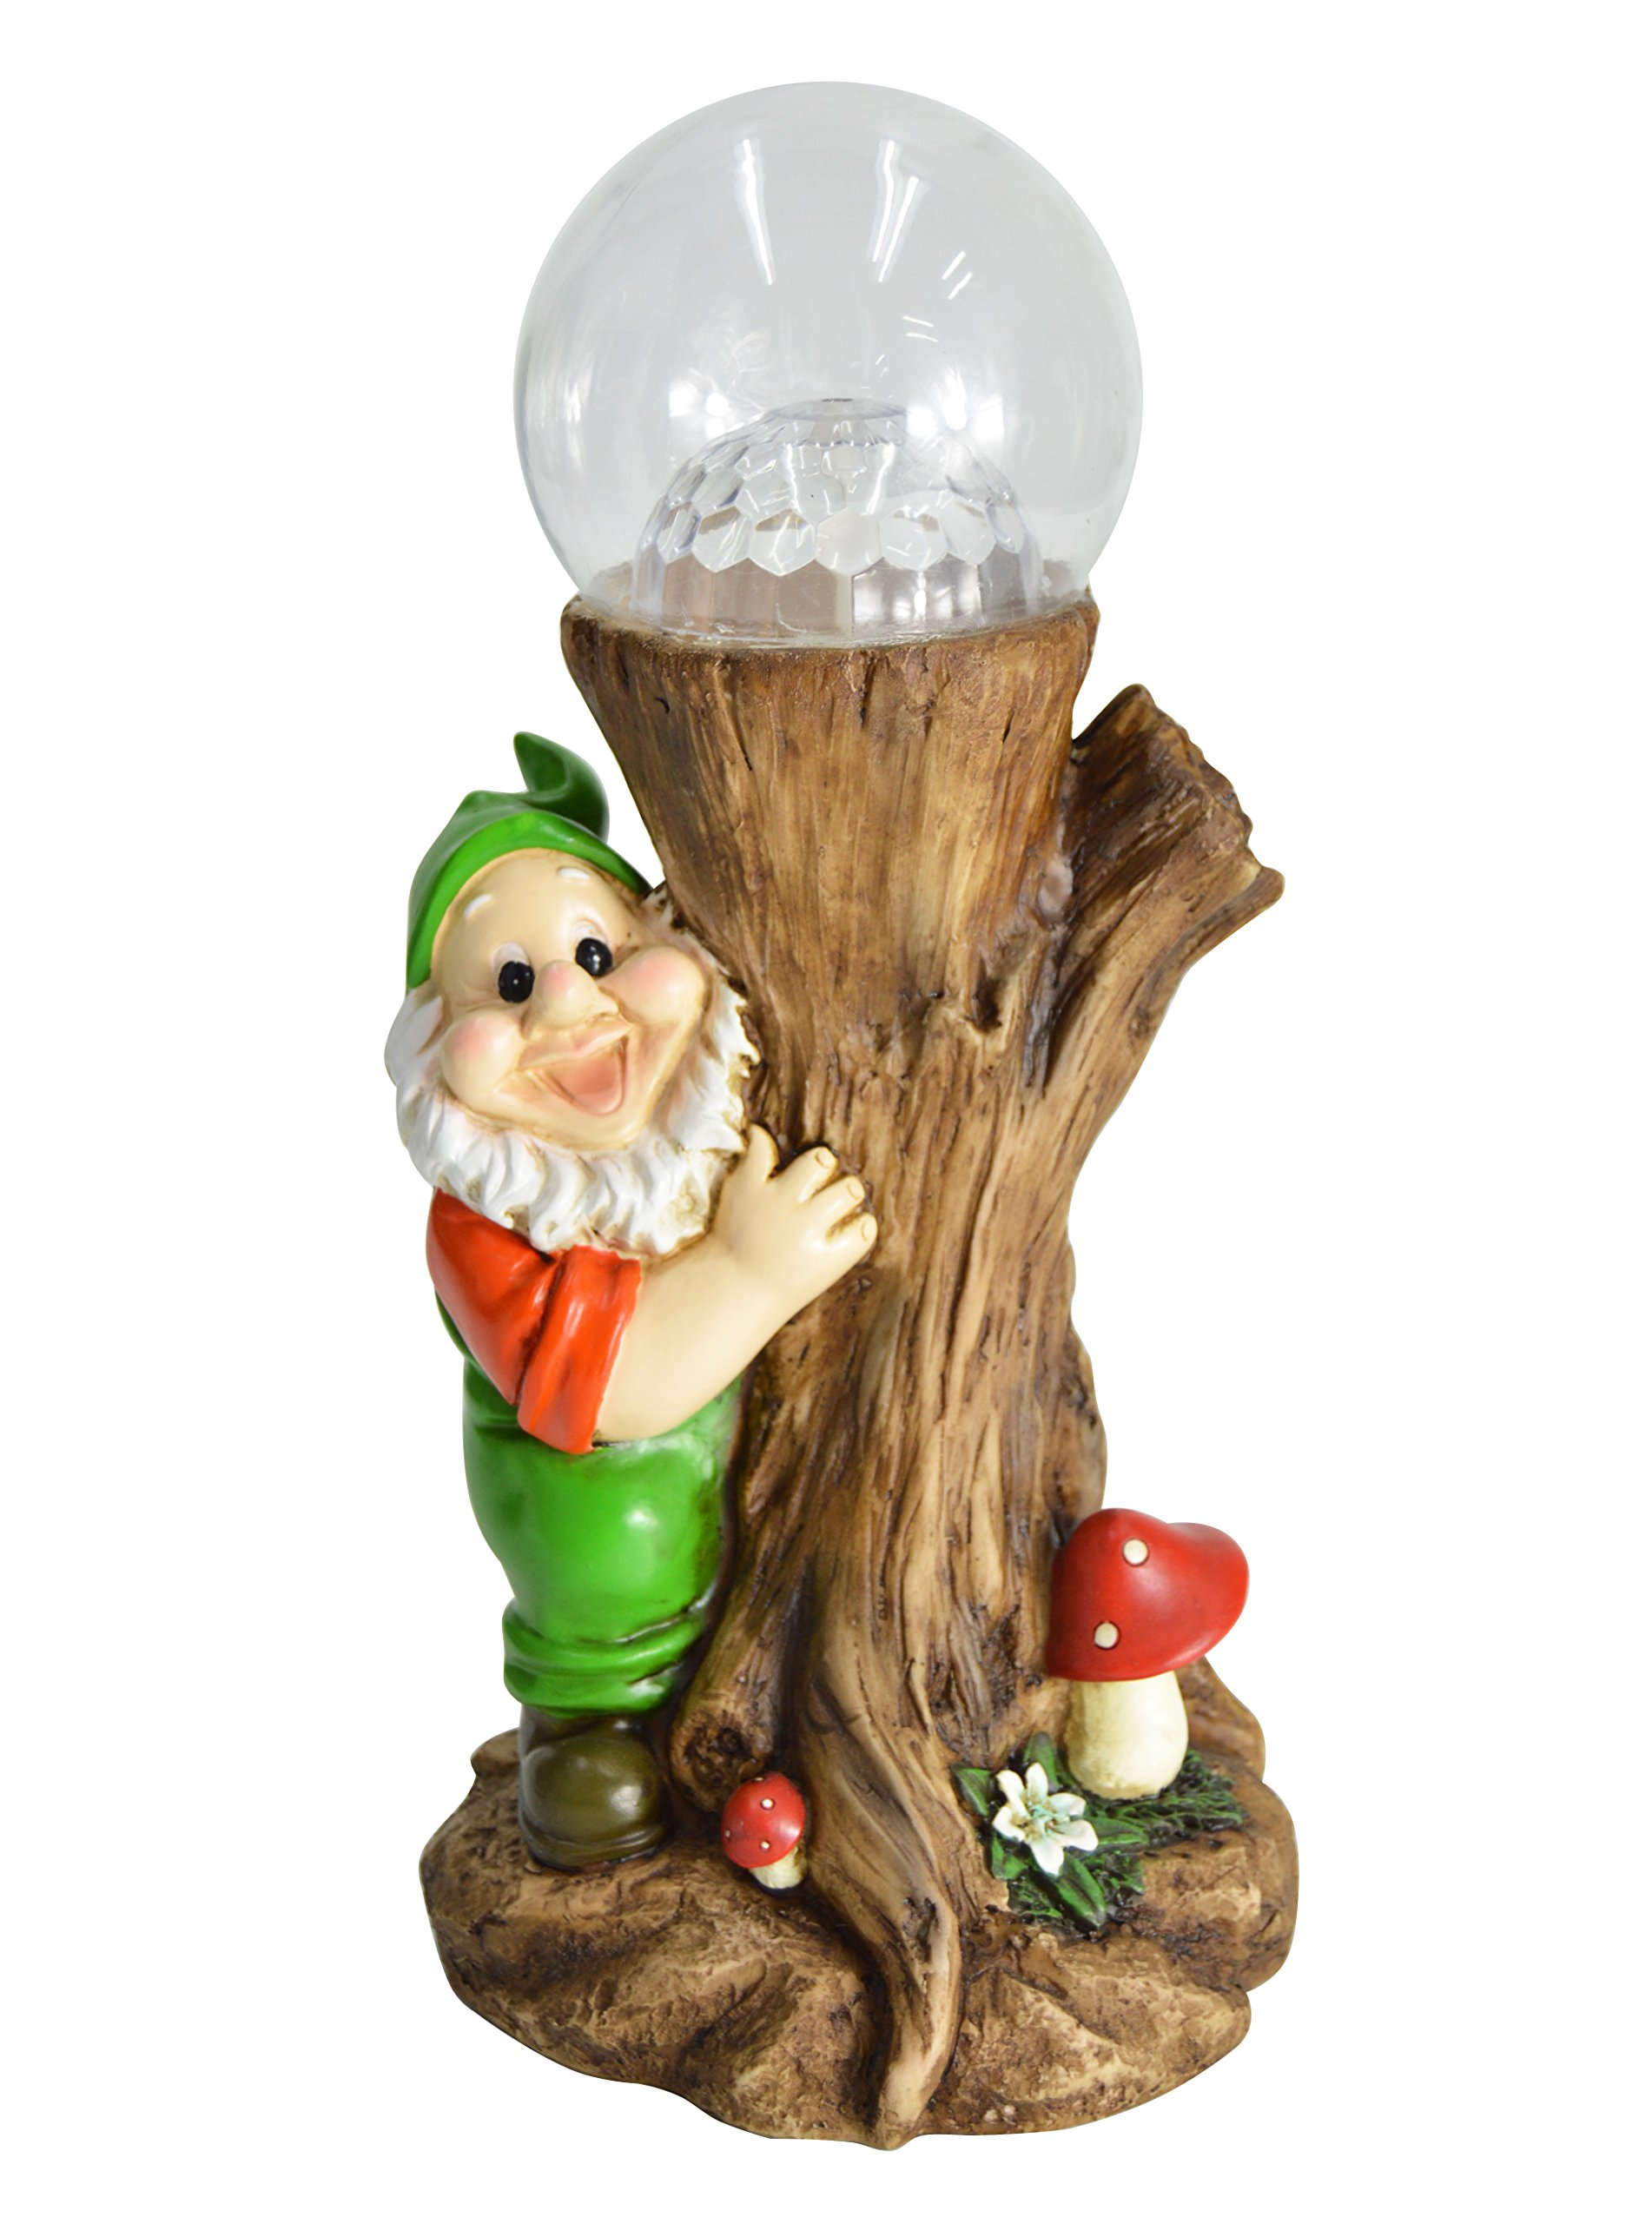 HOMESHINE Color Changing Solar Powered Light Gnome Garden Statues Outdoor Lawn Decorations 12 inch by HOMESHINE